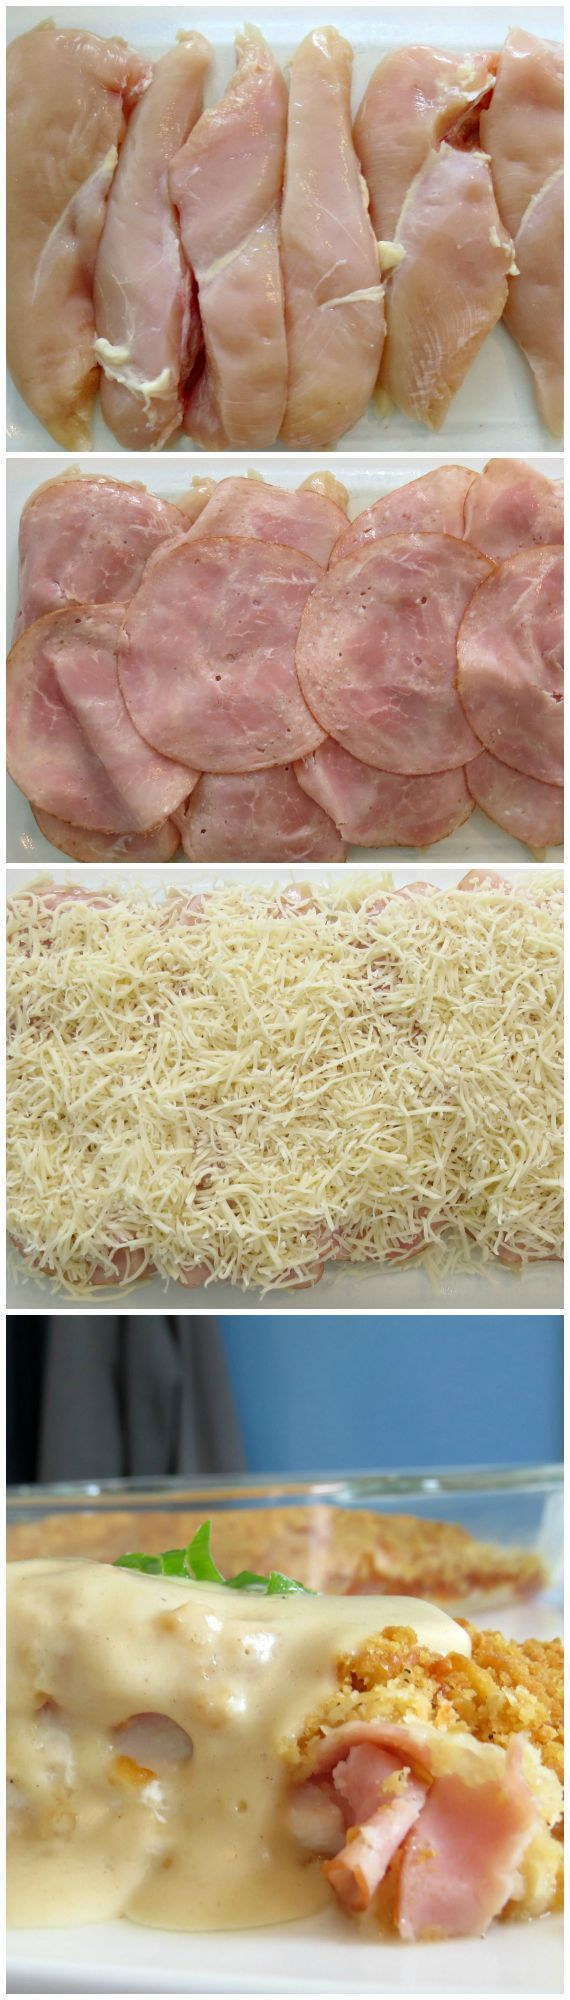 Chicken Cordon Bleu Casserole Recipe: Here's and easy chicken casserole recipe that's creamy and delicious!